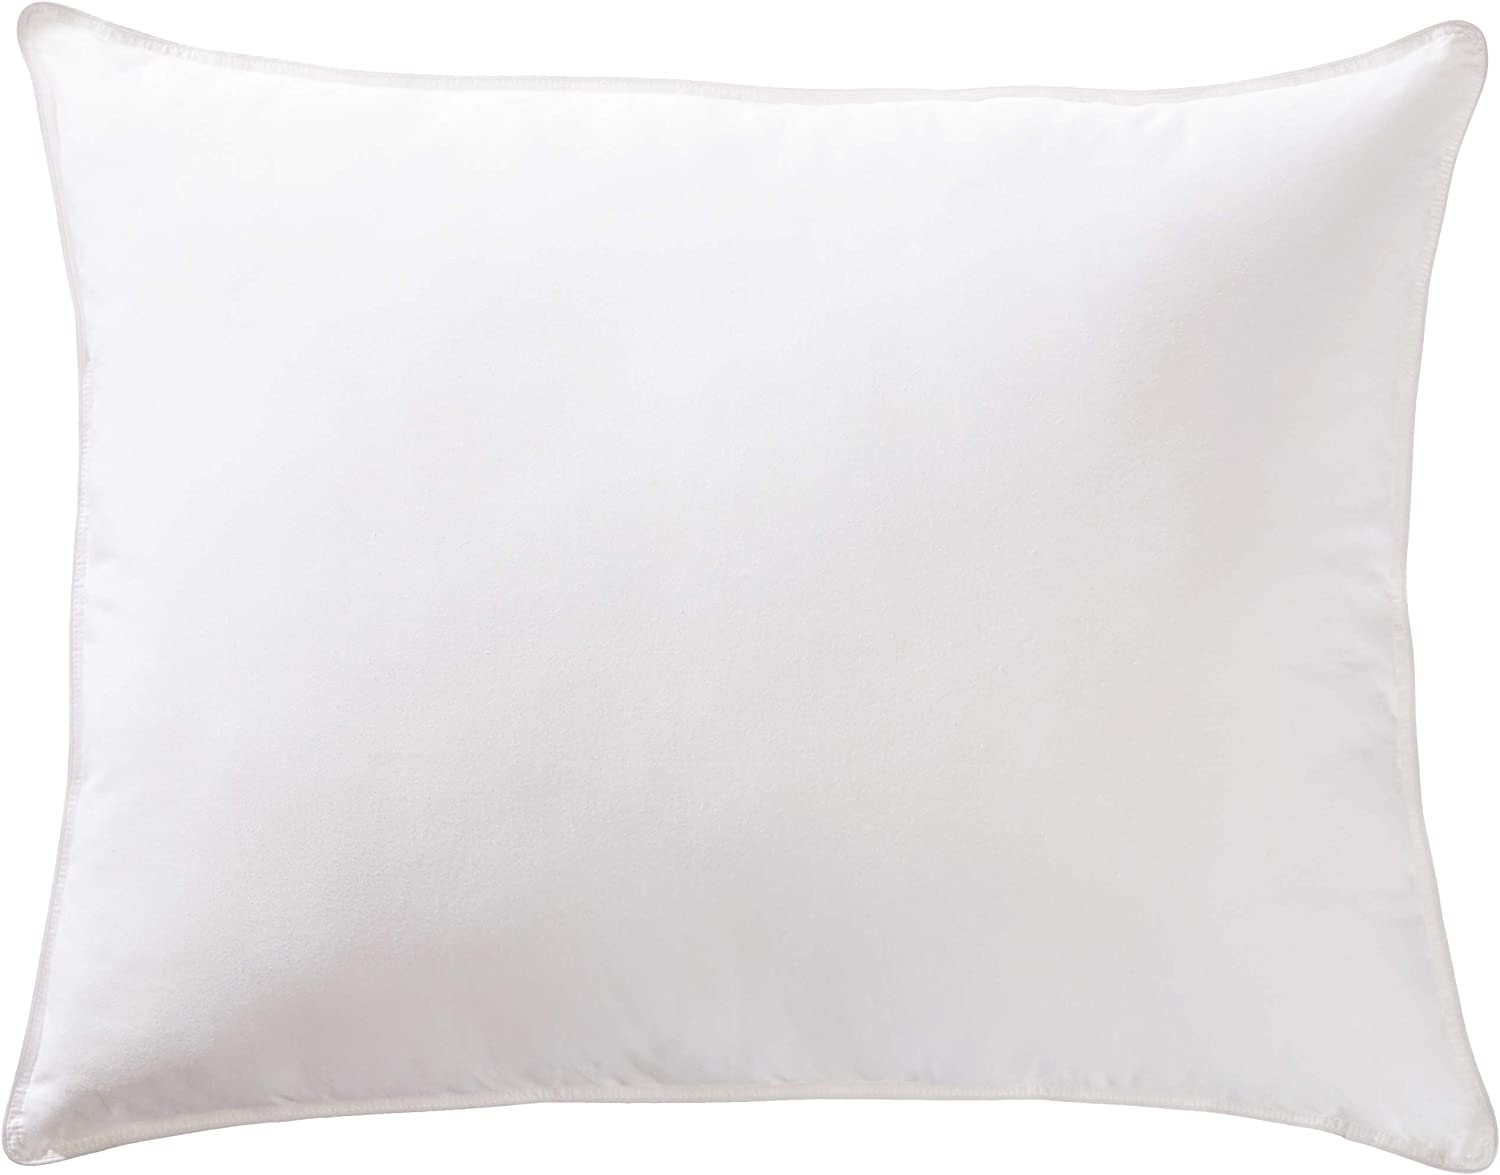 AmazonBasics Deluxe Down-Alternative Pillow with Cotton Shell - Soft Density, Standard